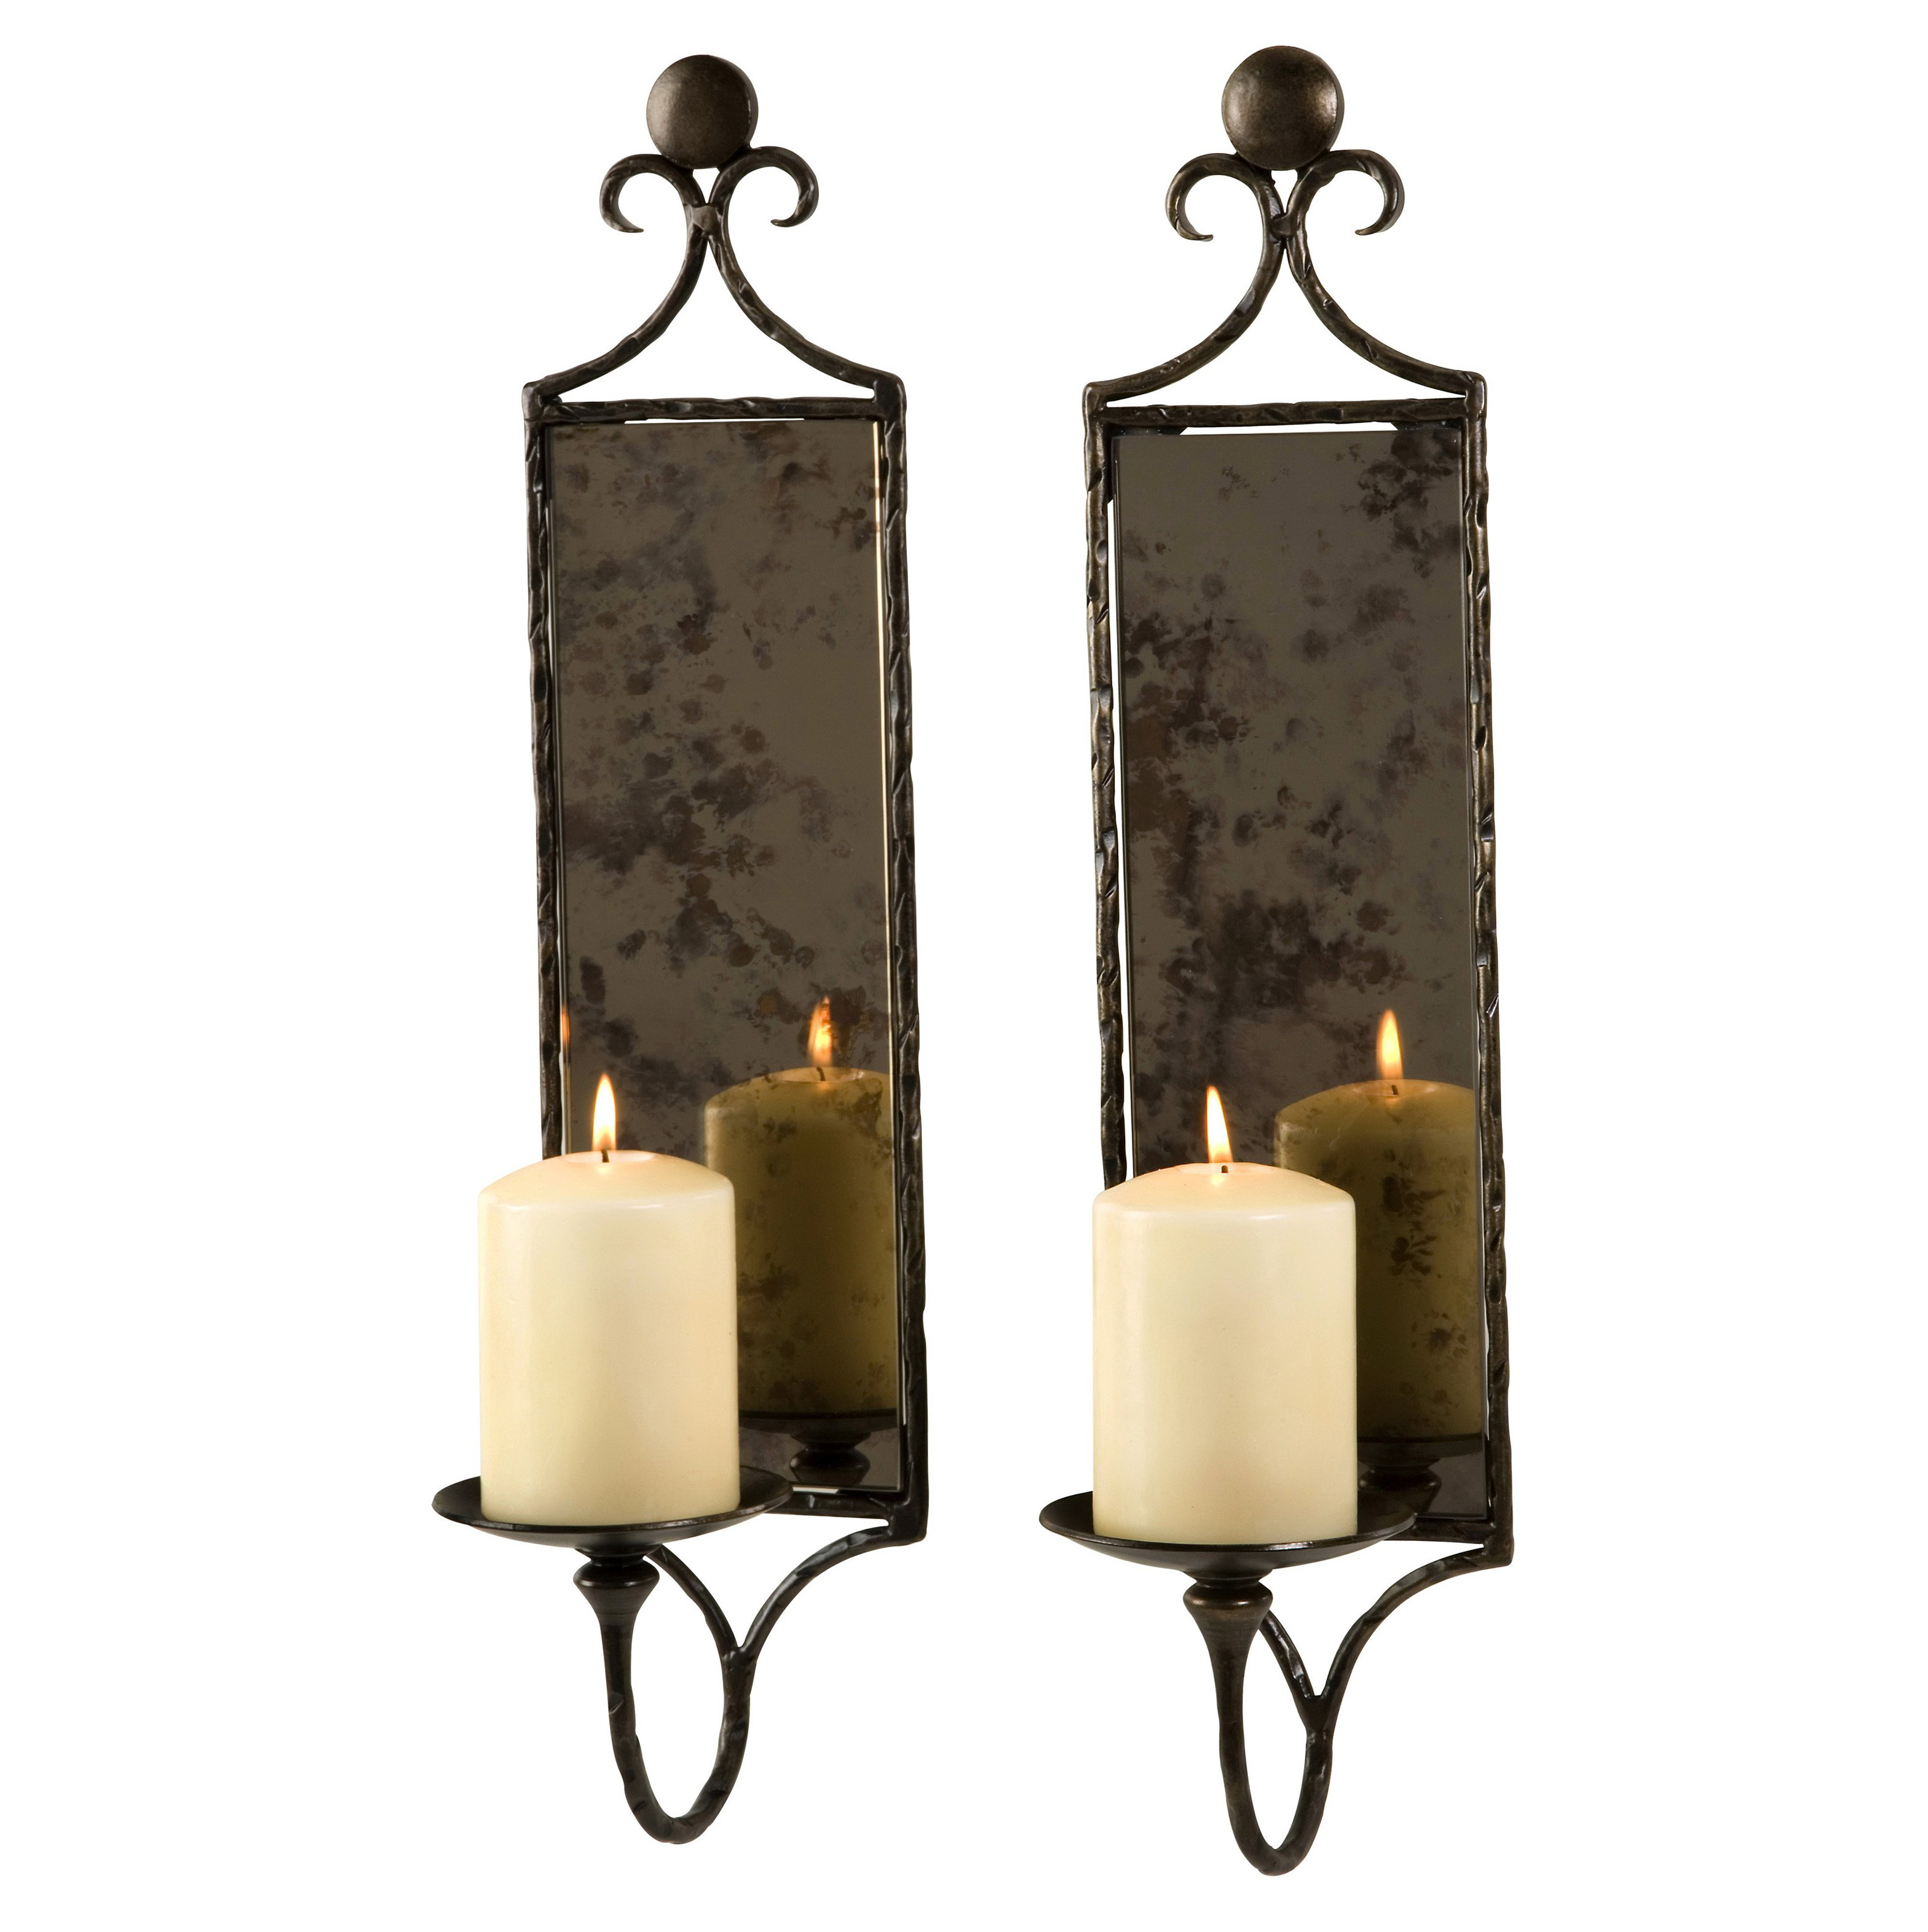 Endearing 50 Mirrored Wall Sconce Candle Holder Design